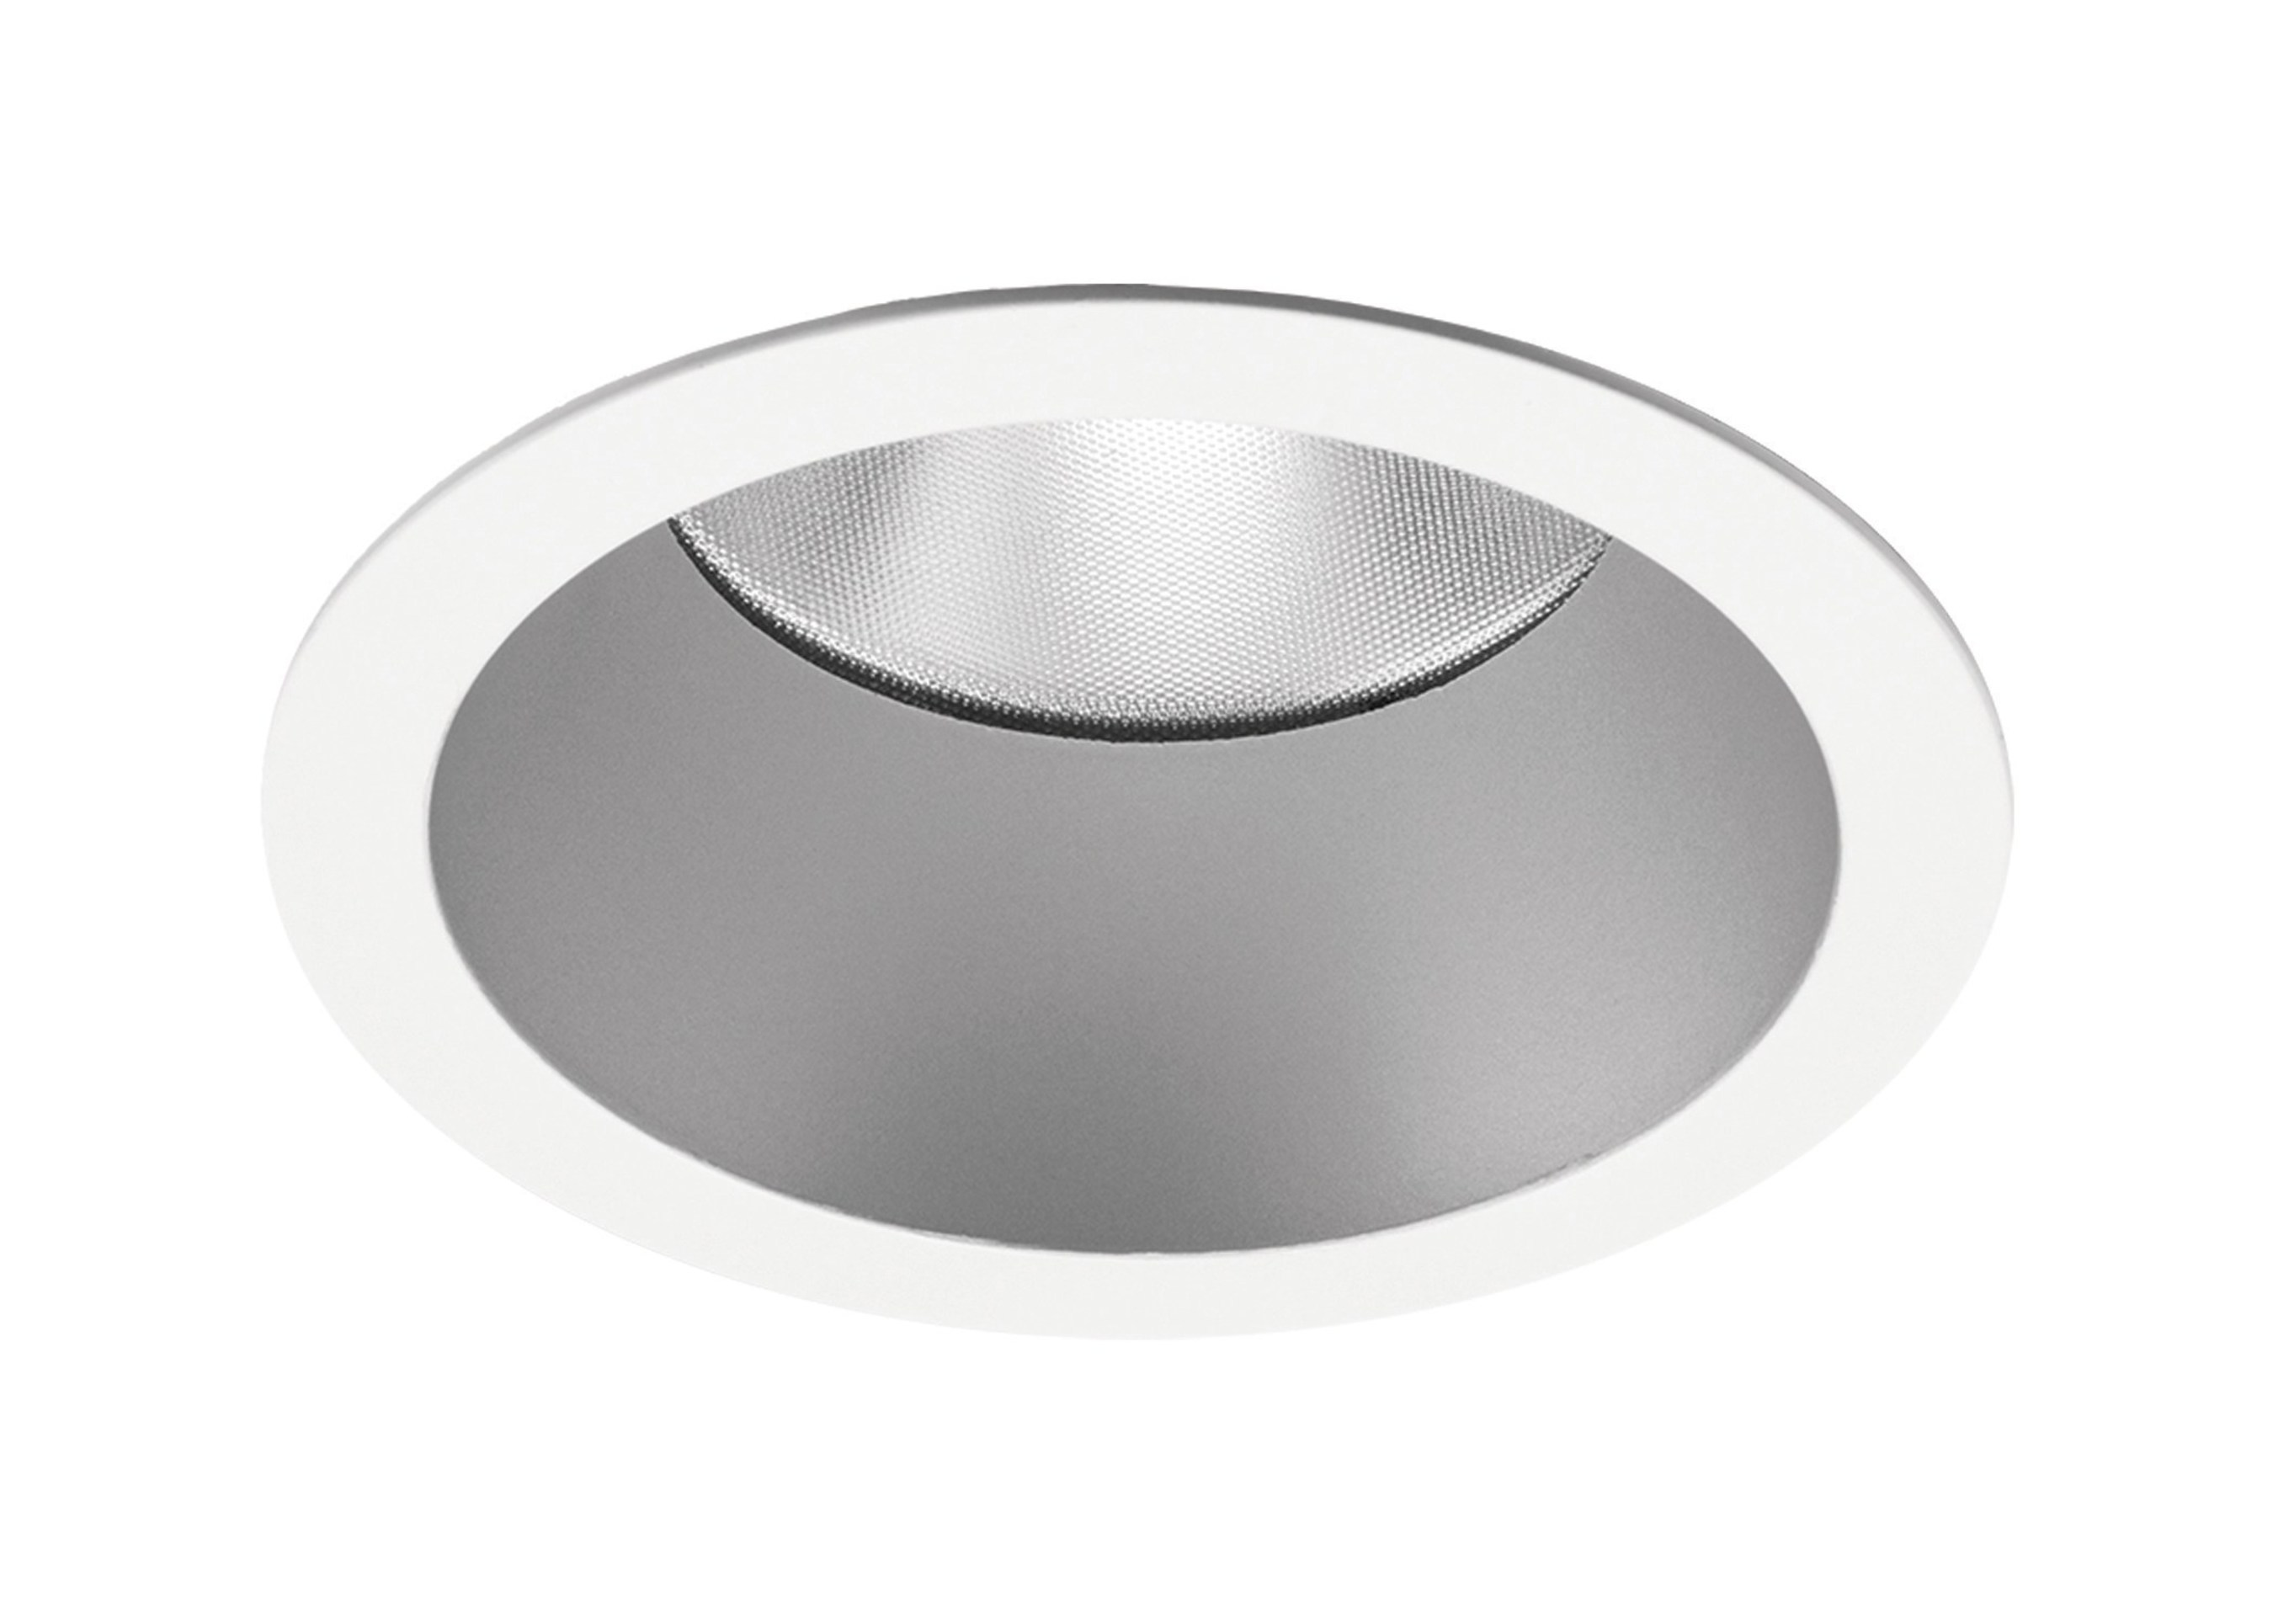 5de010a07 Amerlux adds Solite Lens to Evoke and Hornet HP Downlight families, the  subtle clear choice